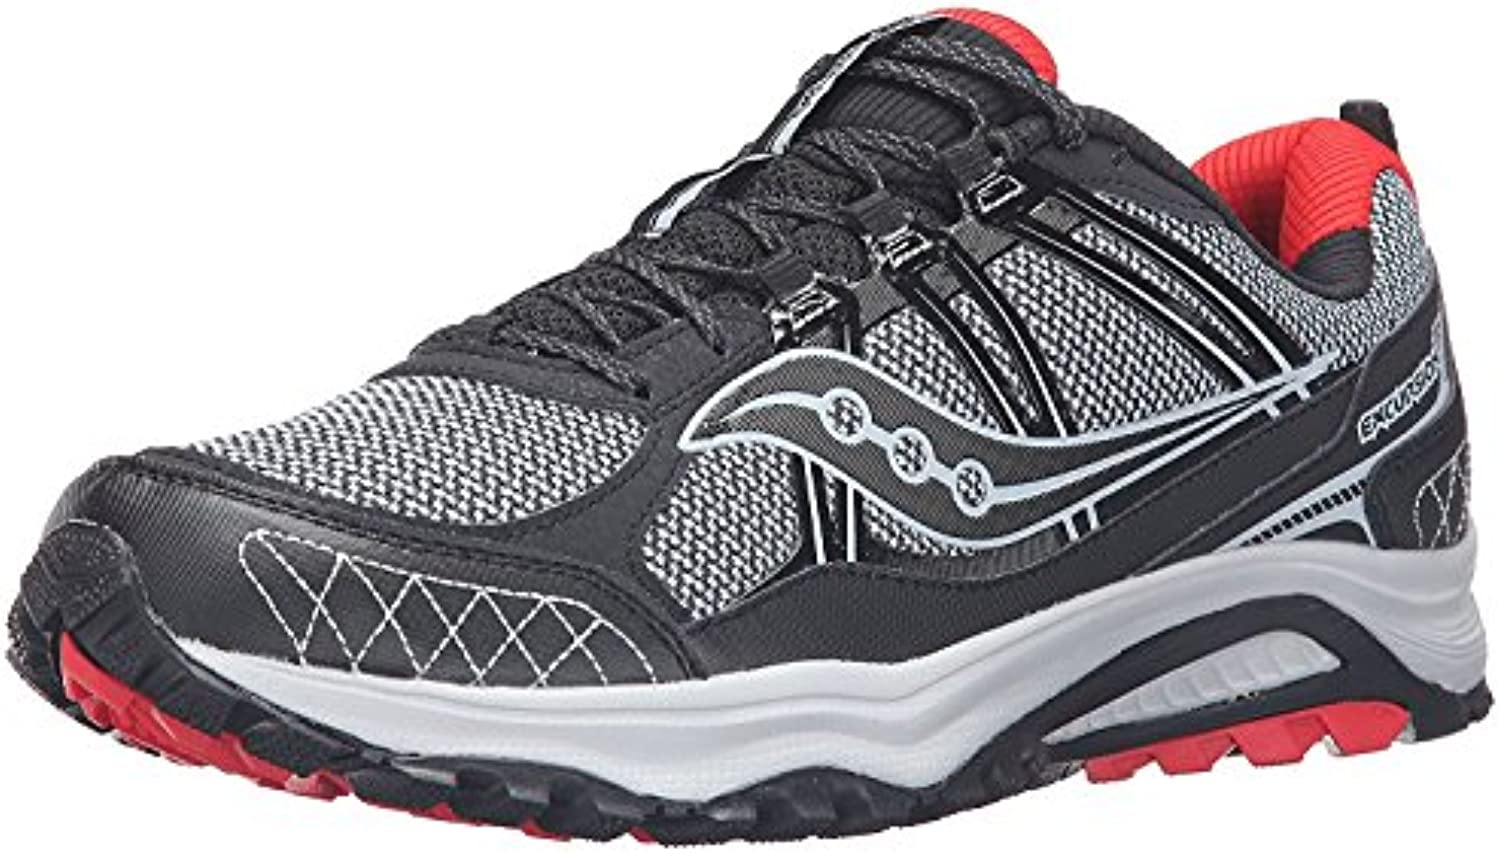 Saucony Men'S Grid Excursion tr10 Running Shoe, Red/Black/Grey, 46 D(M) EU/10.5 D(M) UK